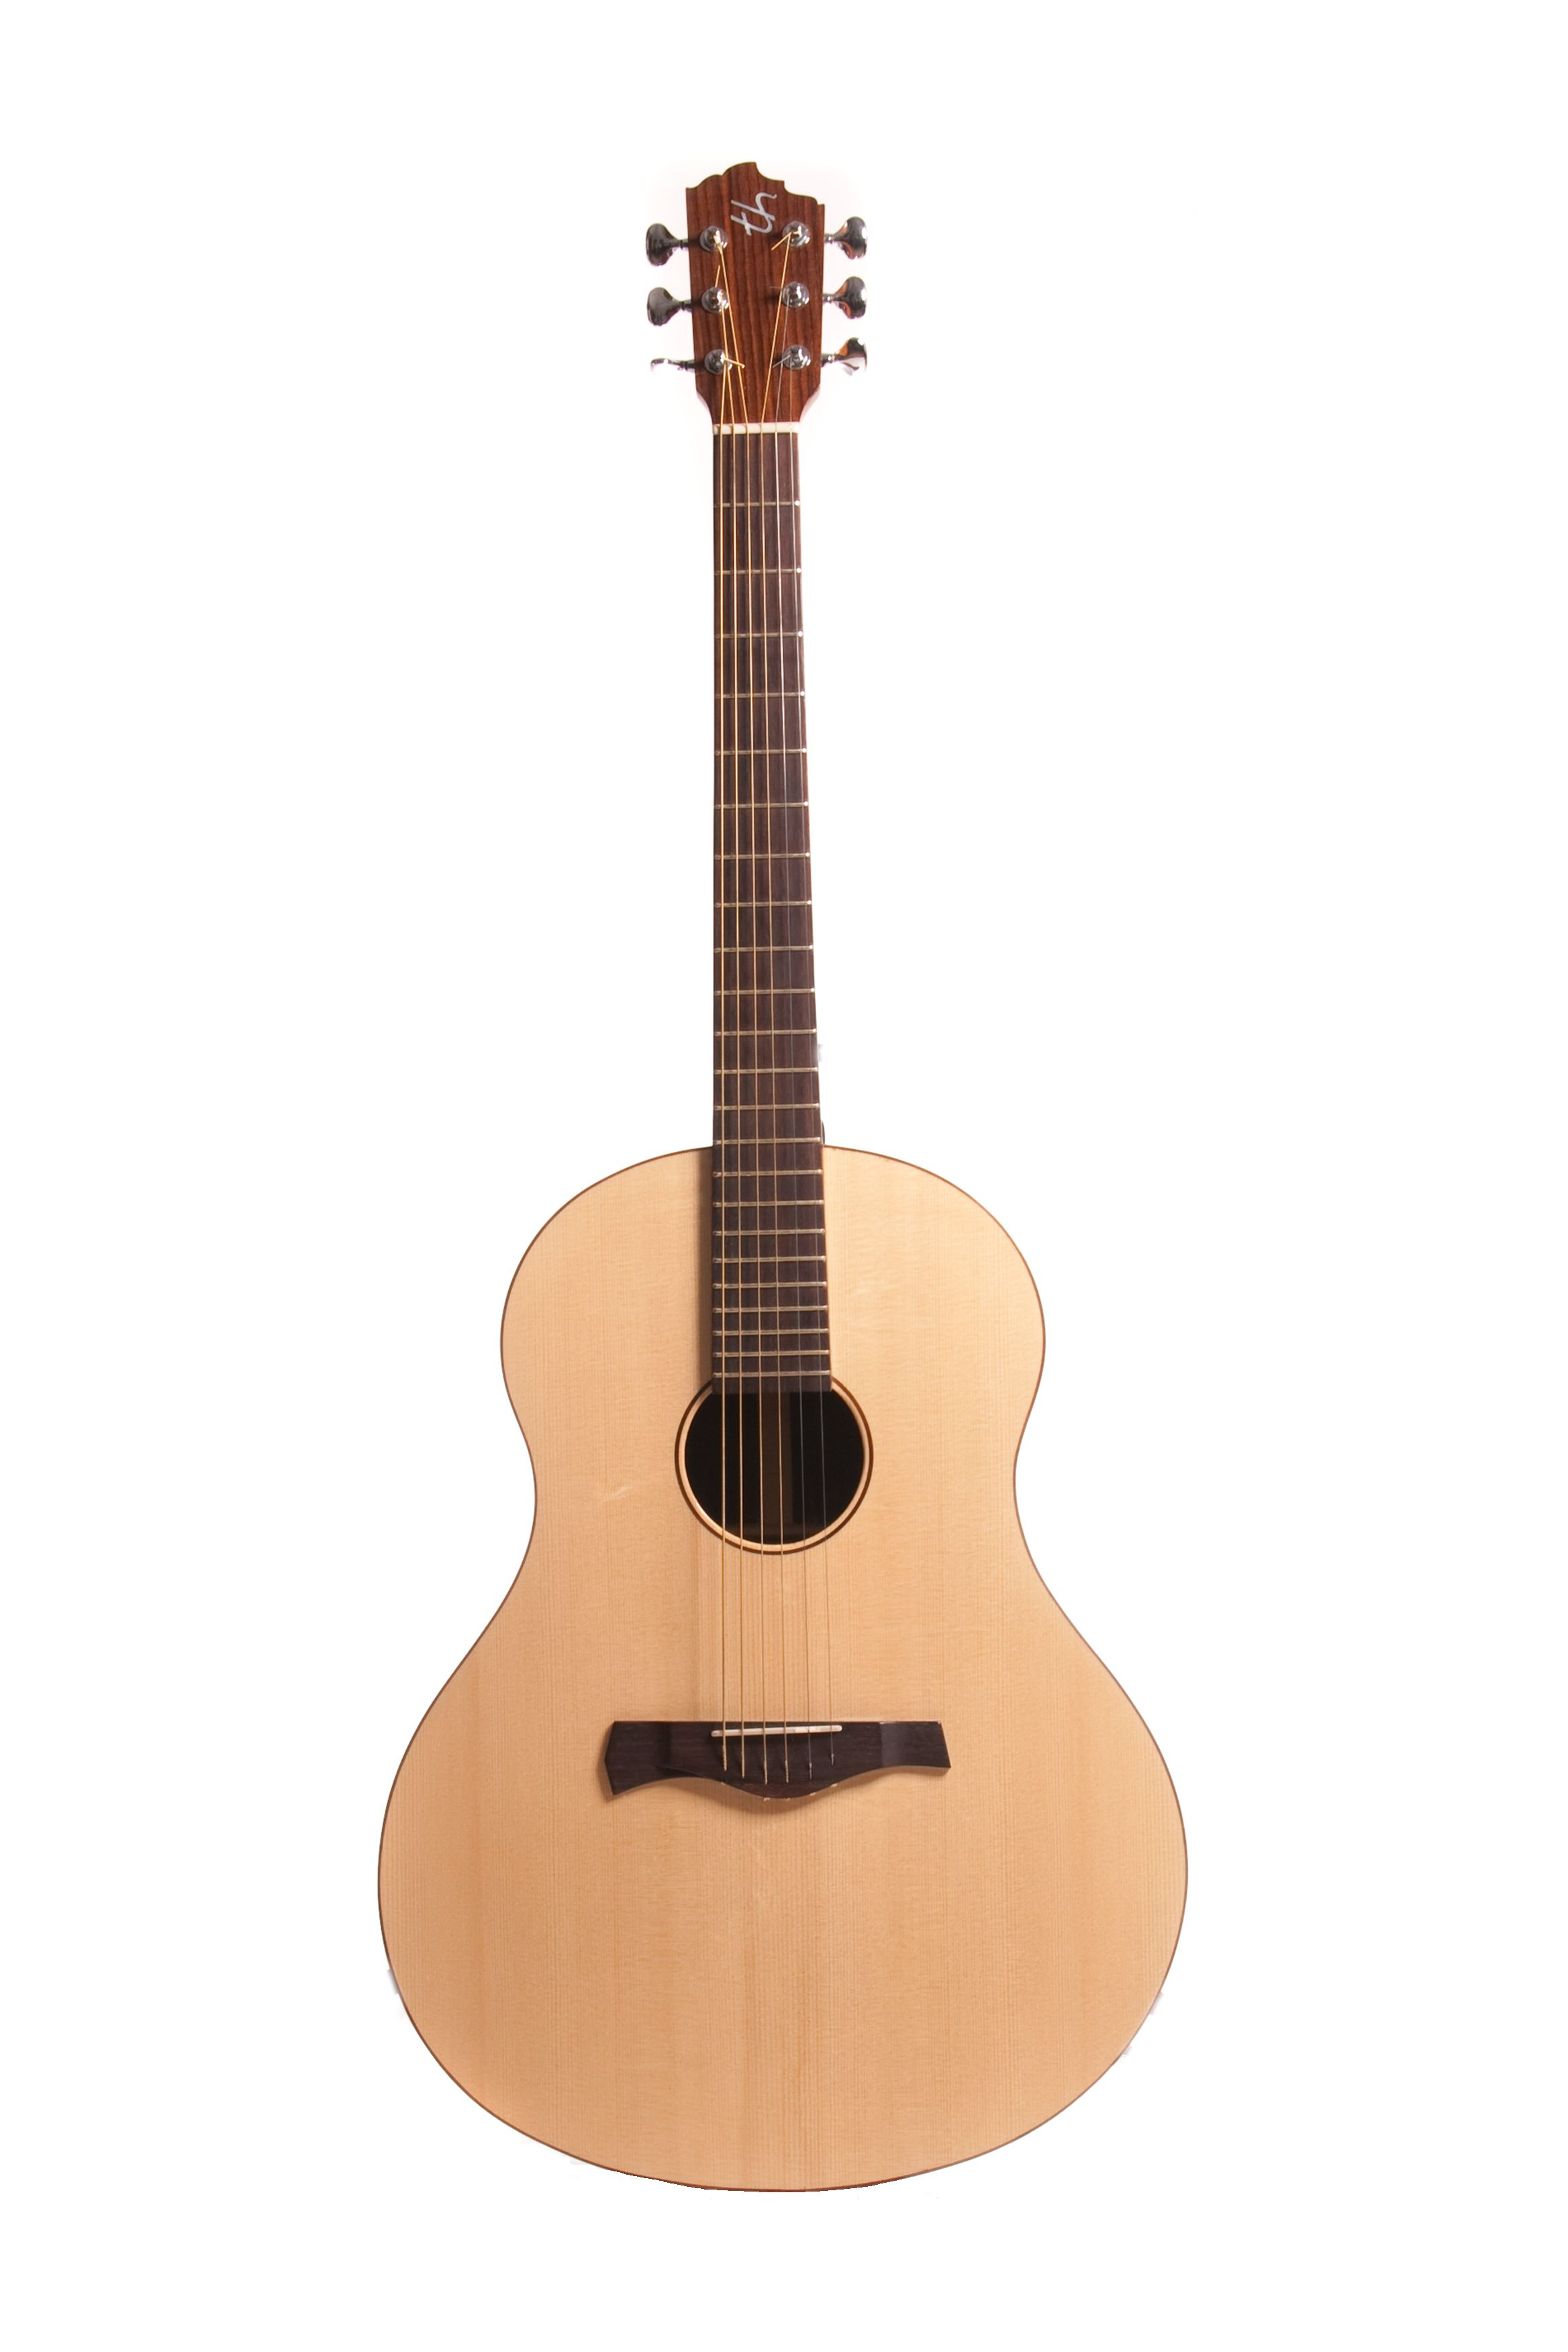 Handley Guitars FStandard, Euro Spruce, Indian Back and